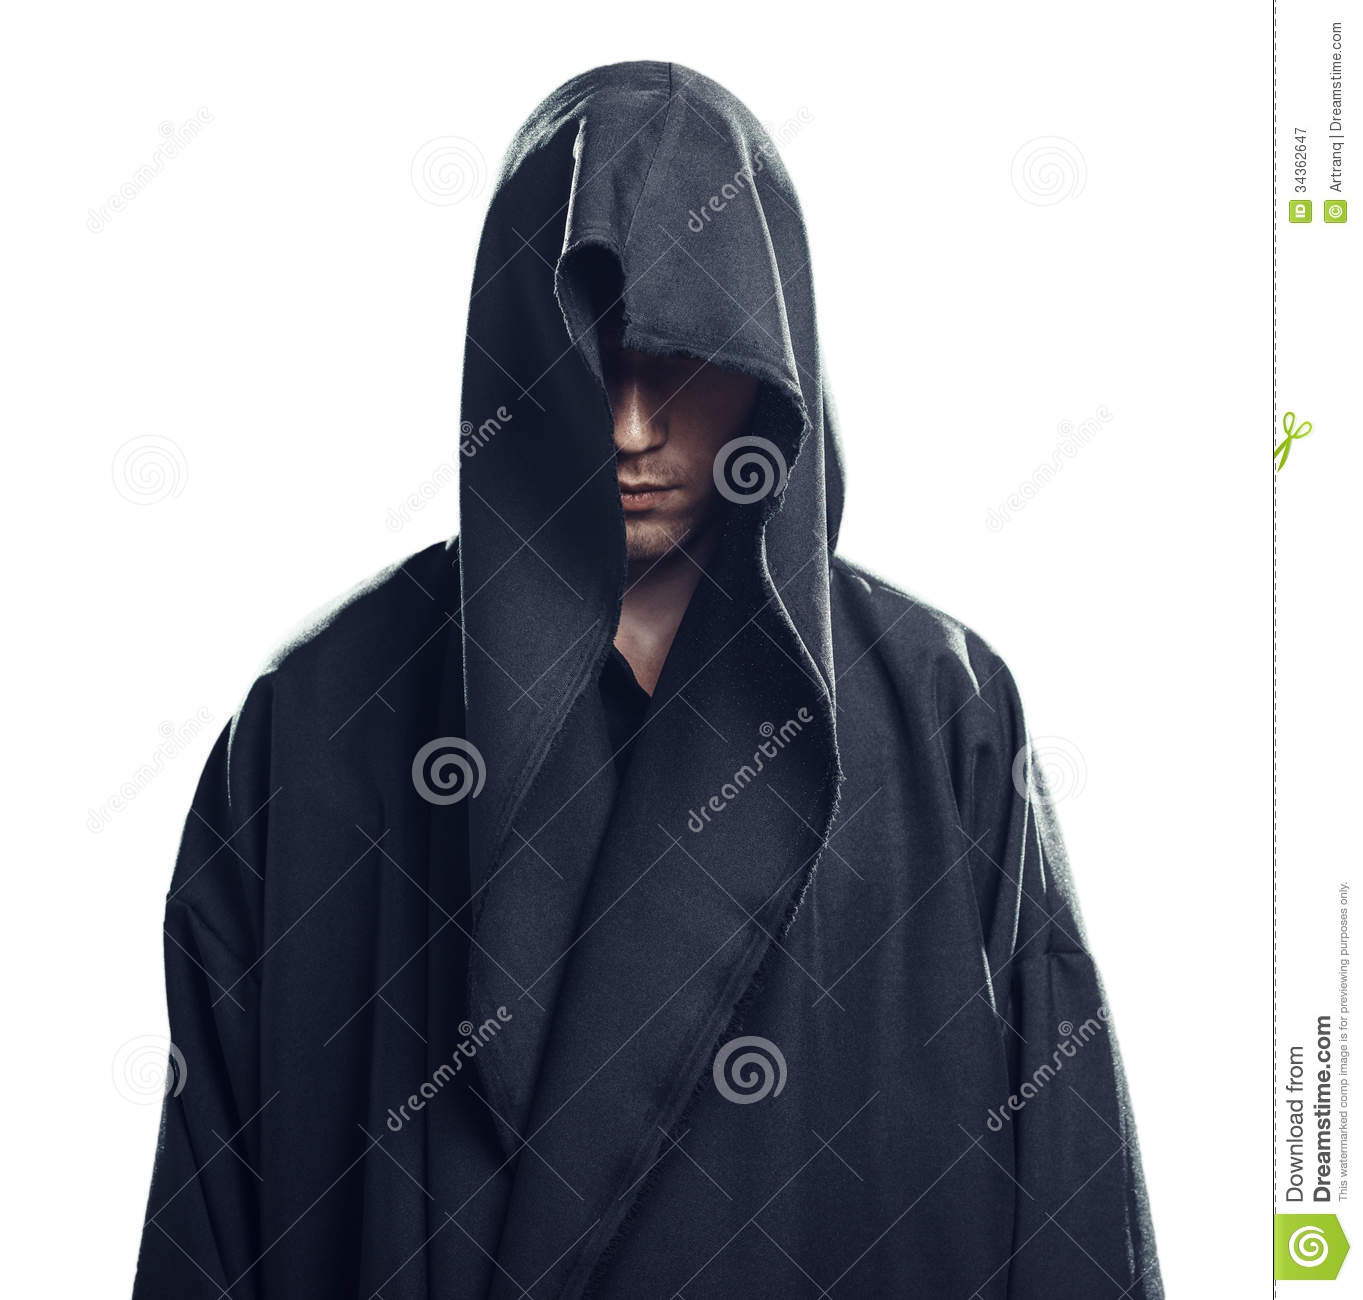 Portrait Of Man In A Black Robe Royalty Free Stock Photography - Image ...